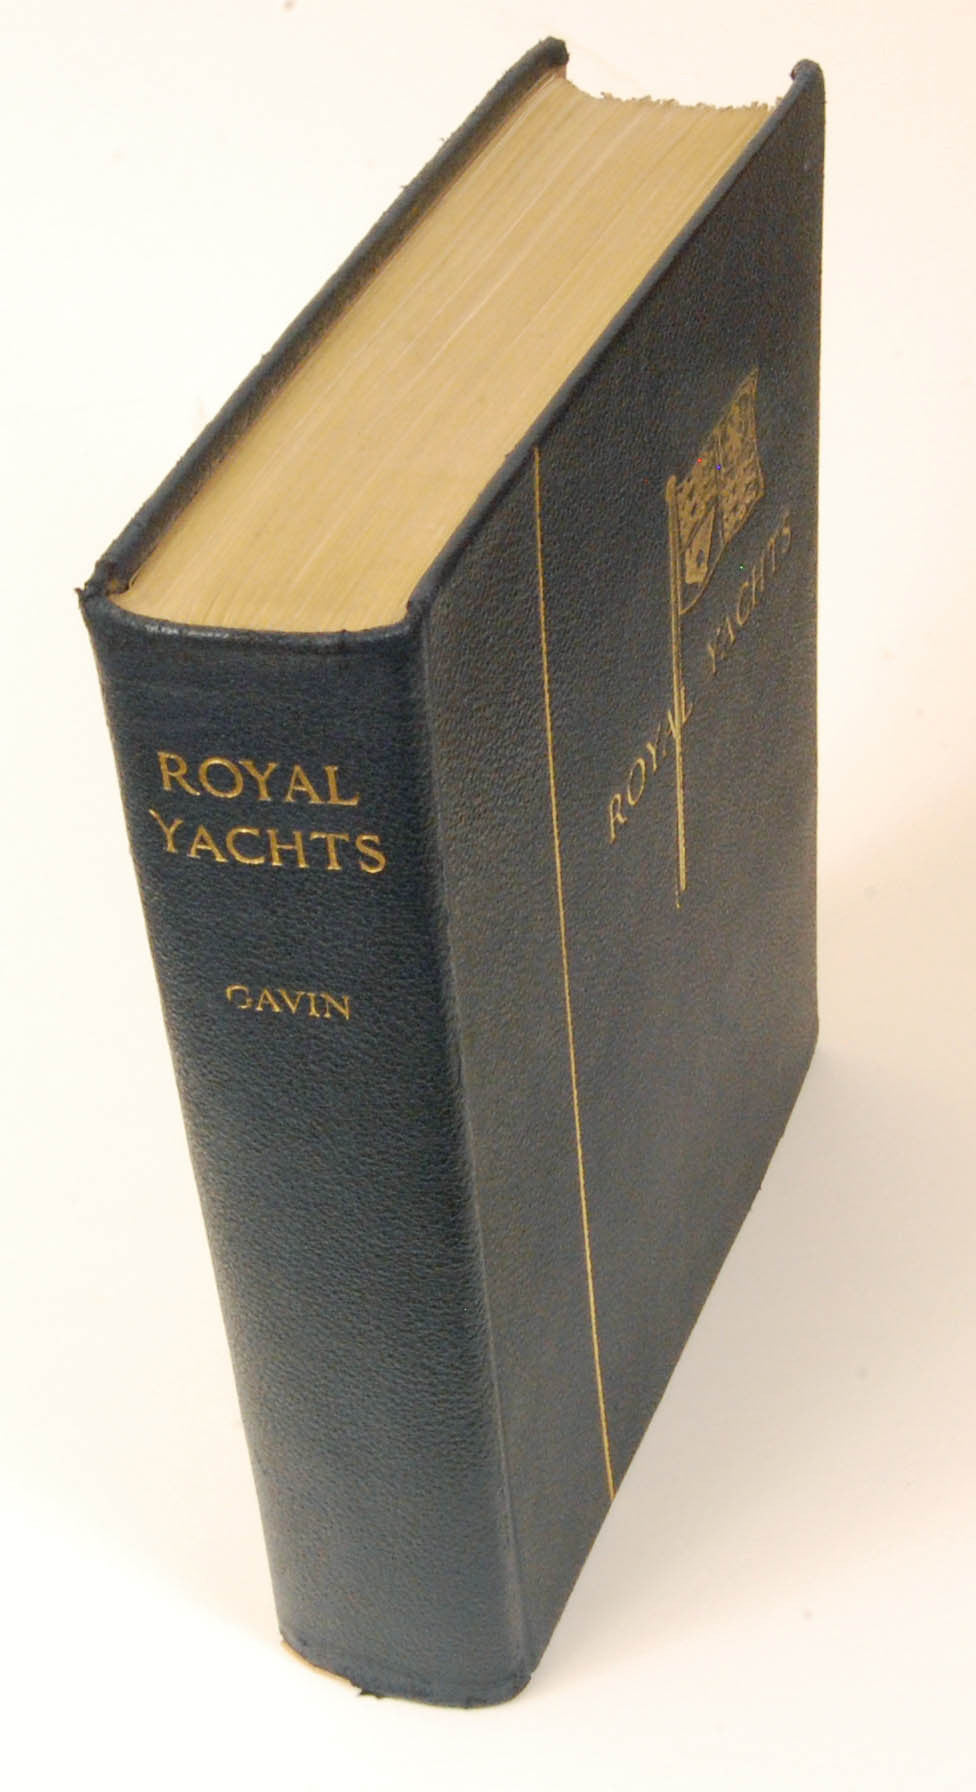 Book - Royal Yachts by Charles Murray Gavin